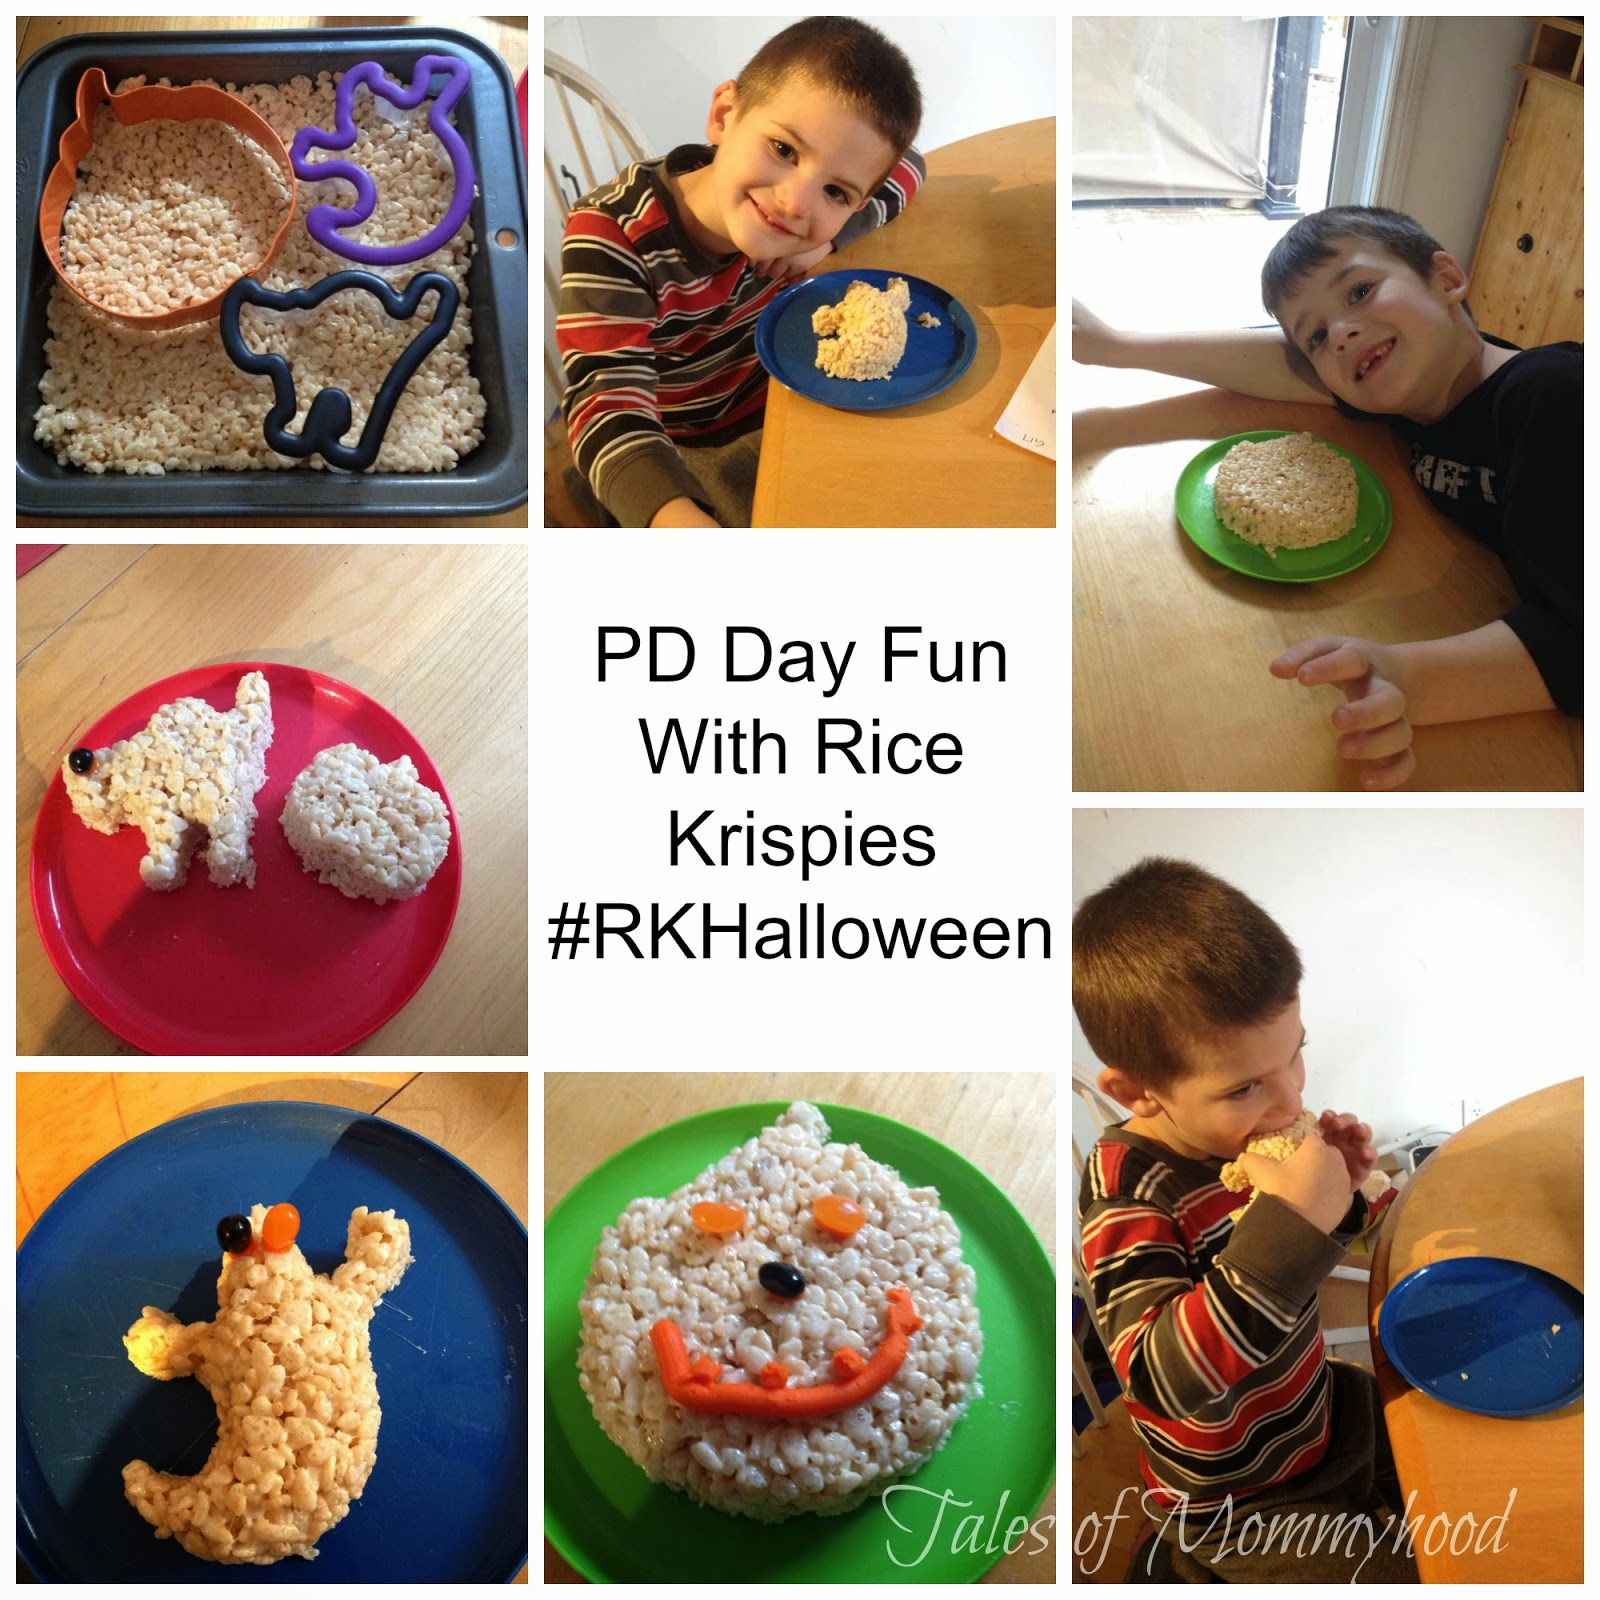 #RKHalloween, Rice Krispies Treats, PD Day fun, optometrist,